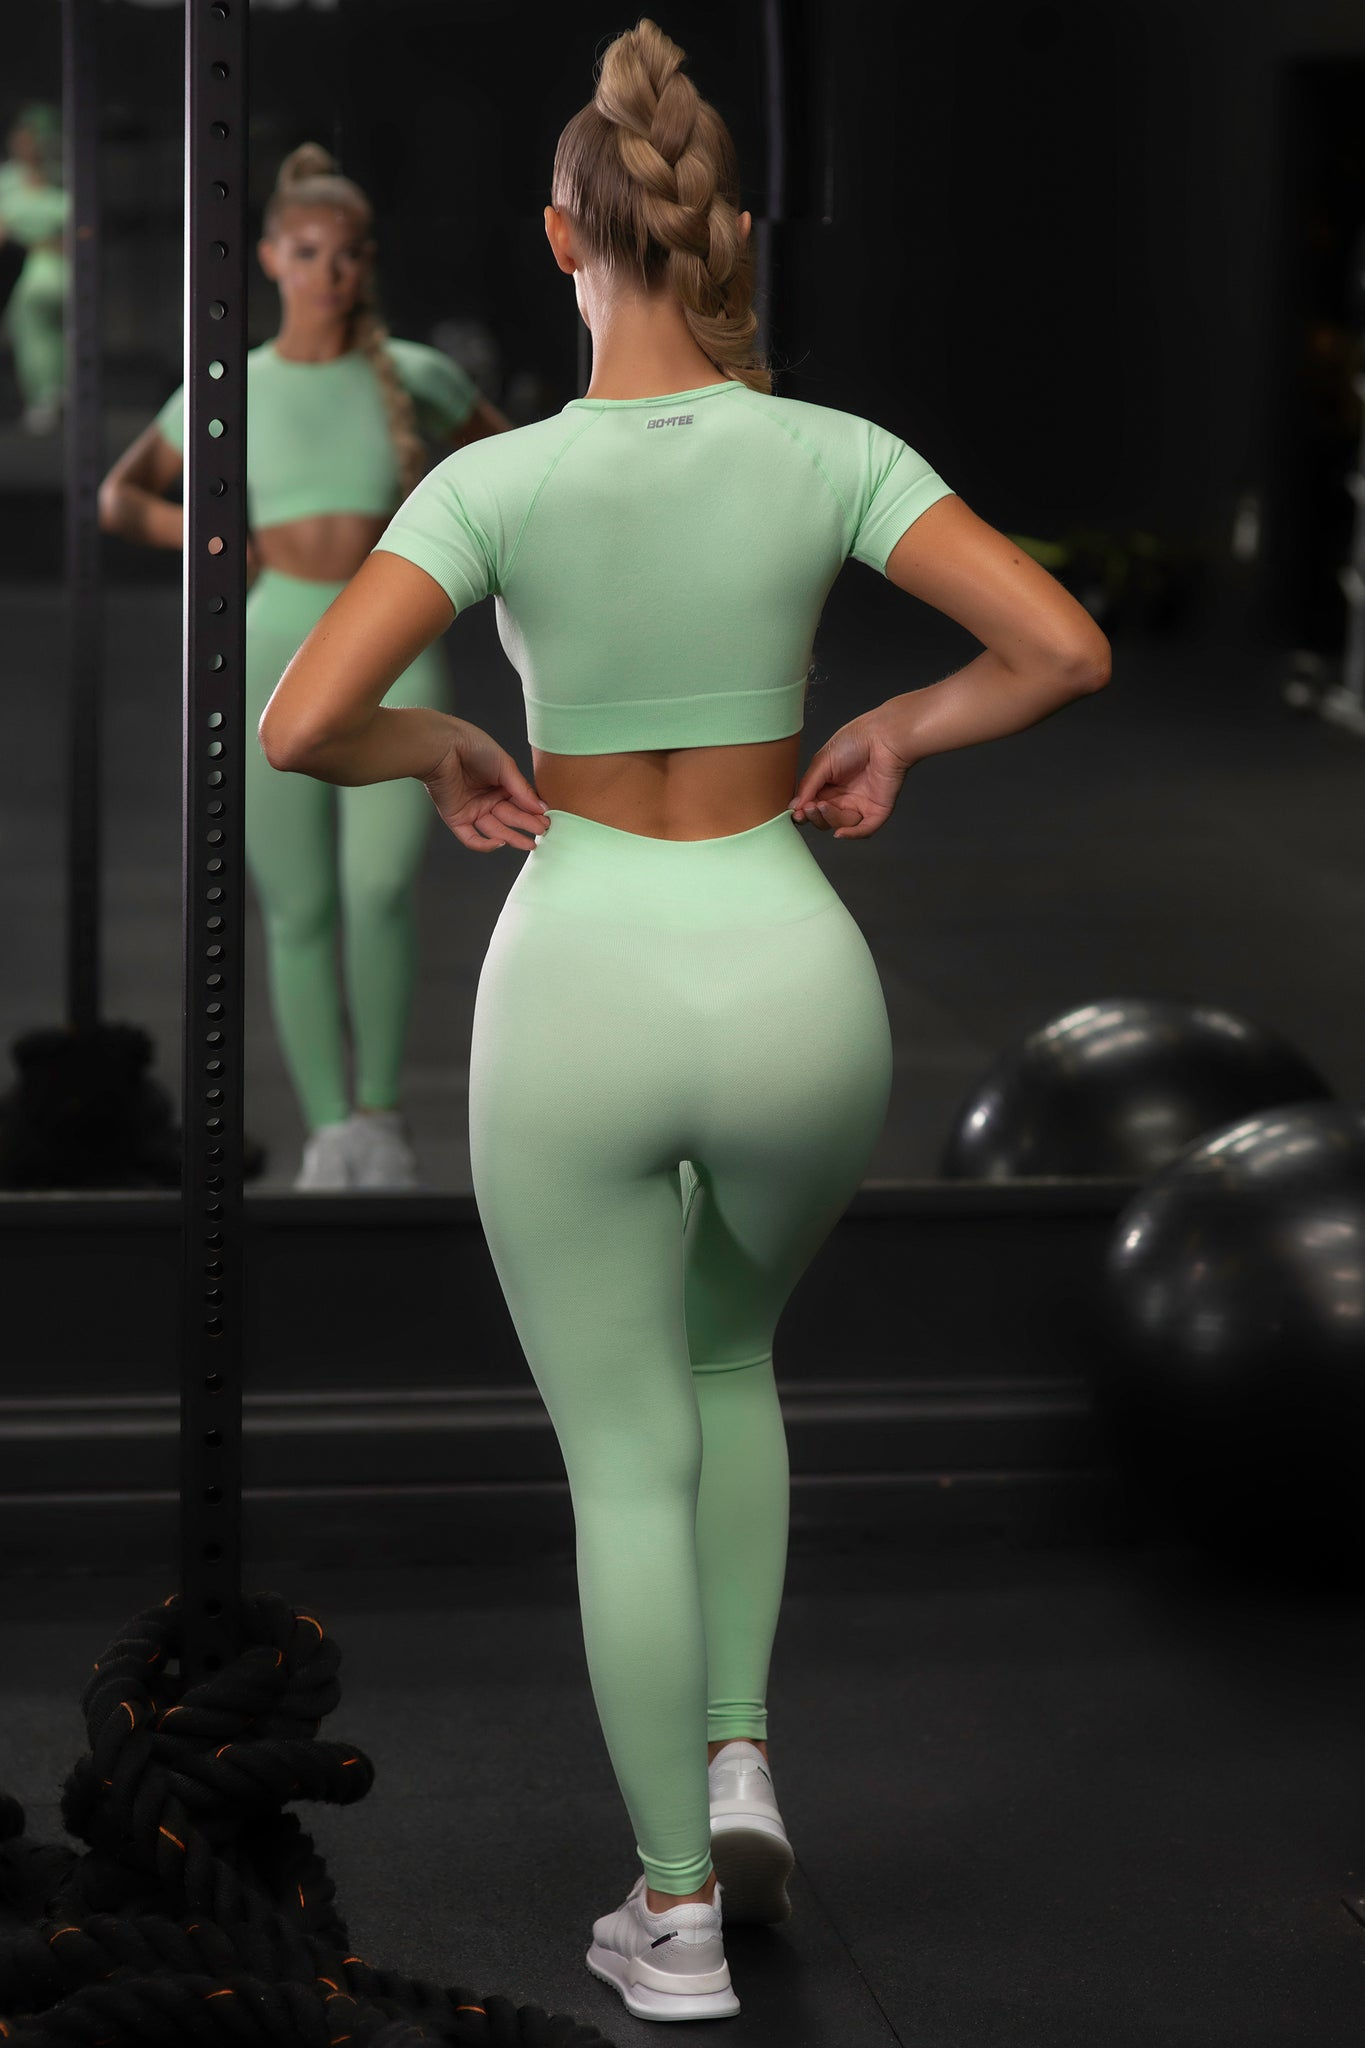 Plain bright green seamless high waisted full length gym leggings. Image 3 of 6.